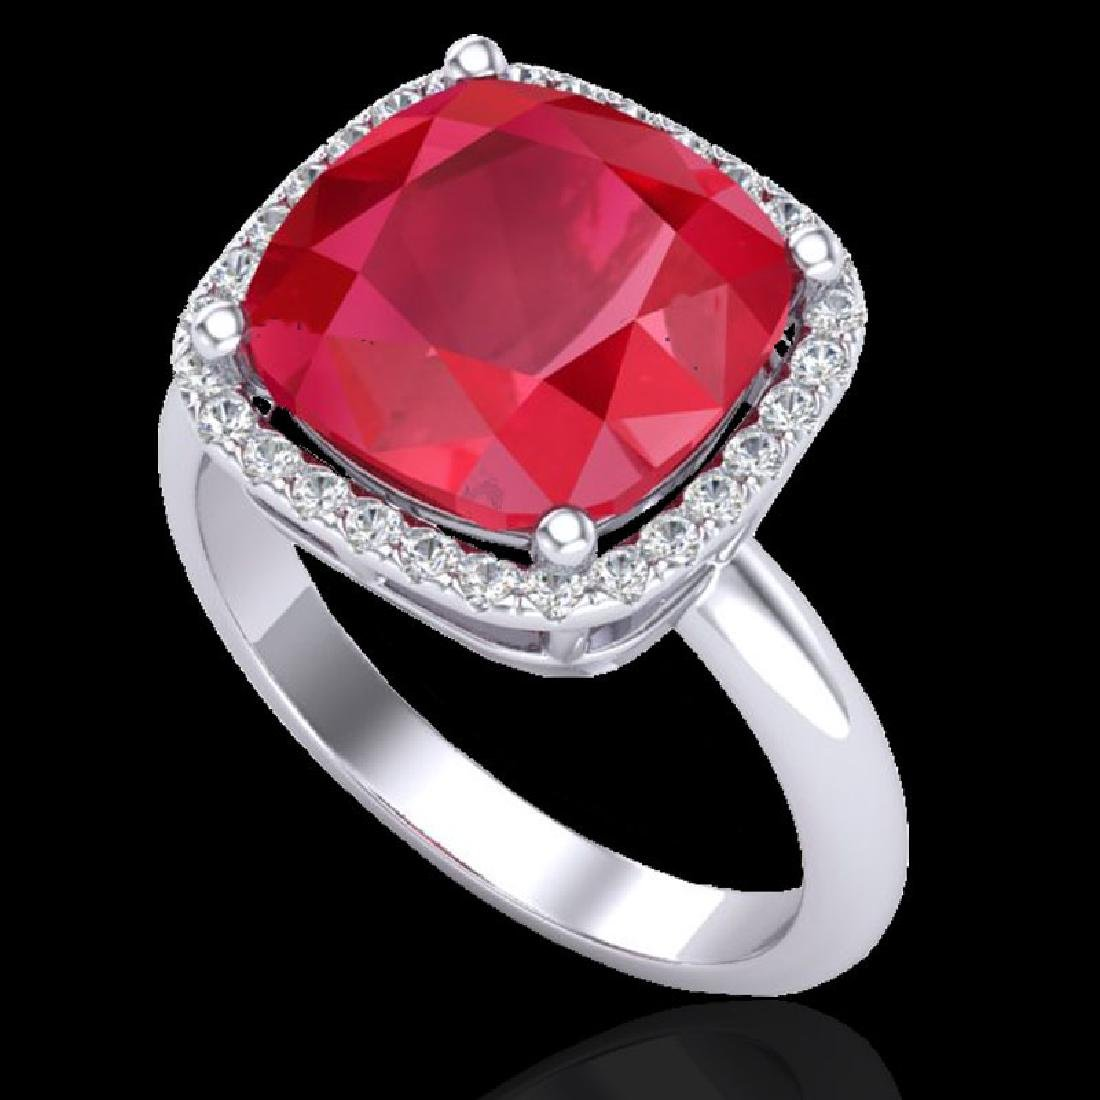 6 CTW Ruby & Micro Pave Halo VS/SI Diamond Ring 18K - 2